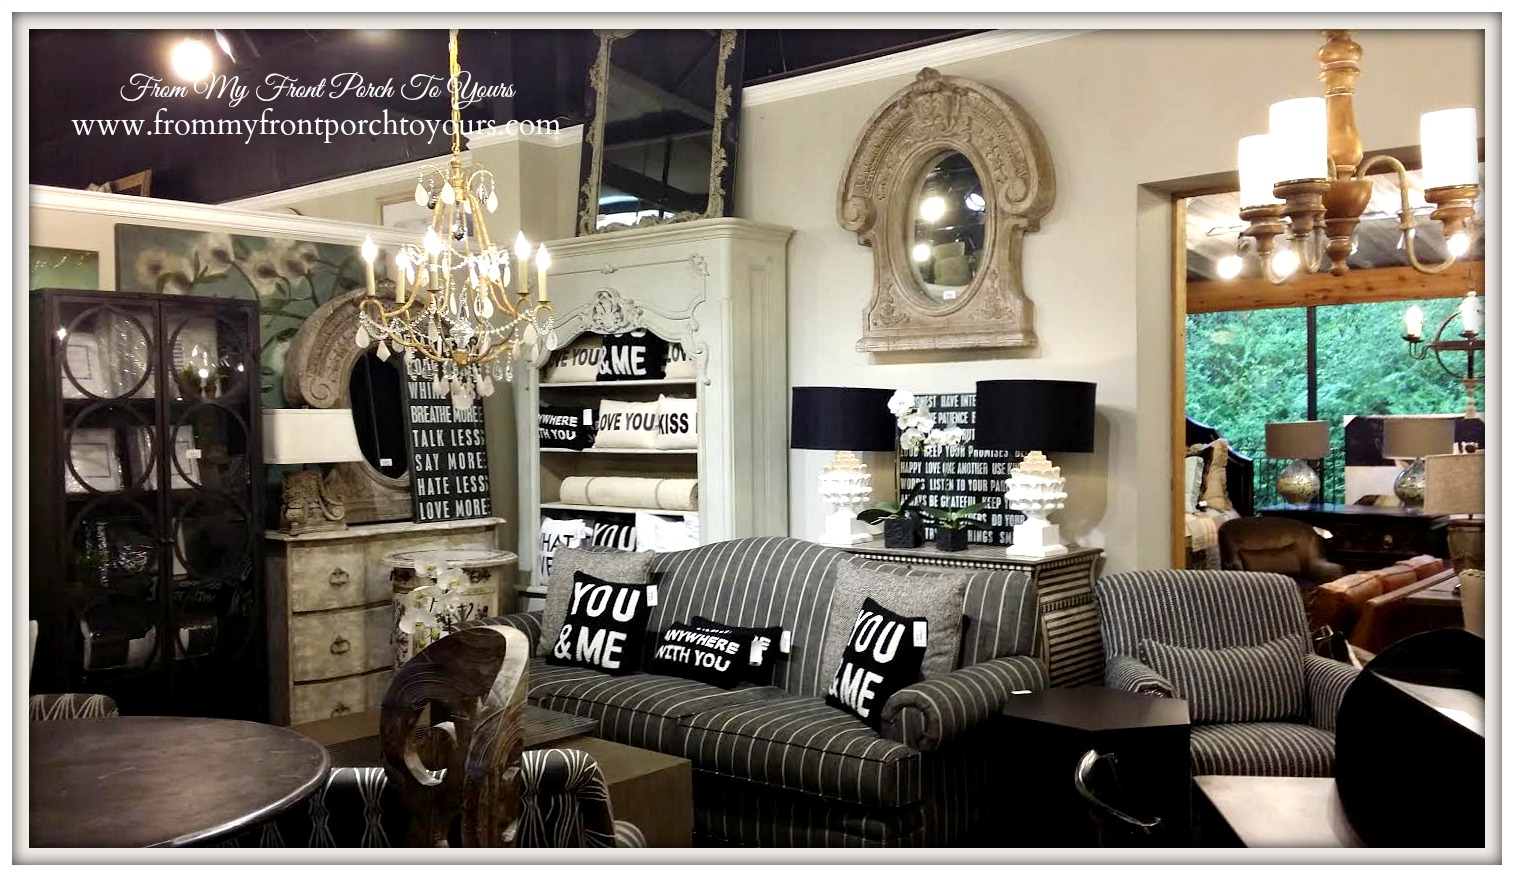 Laurie's Home Furnishings- From My Front Porch To Yours